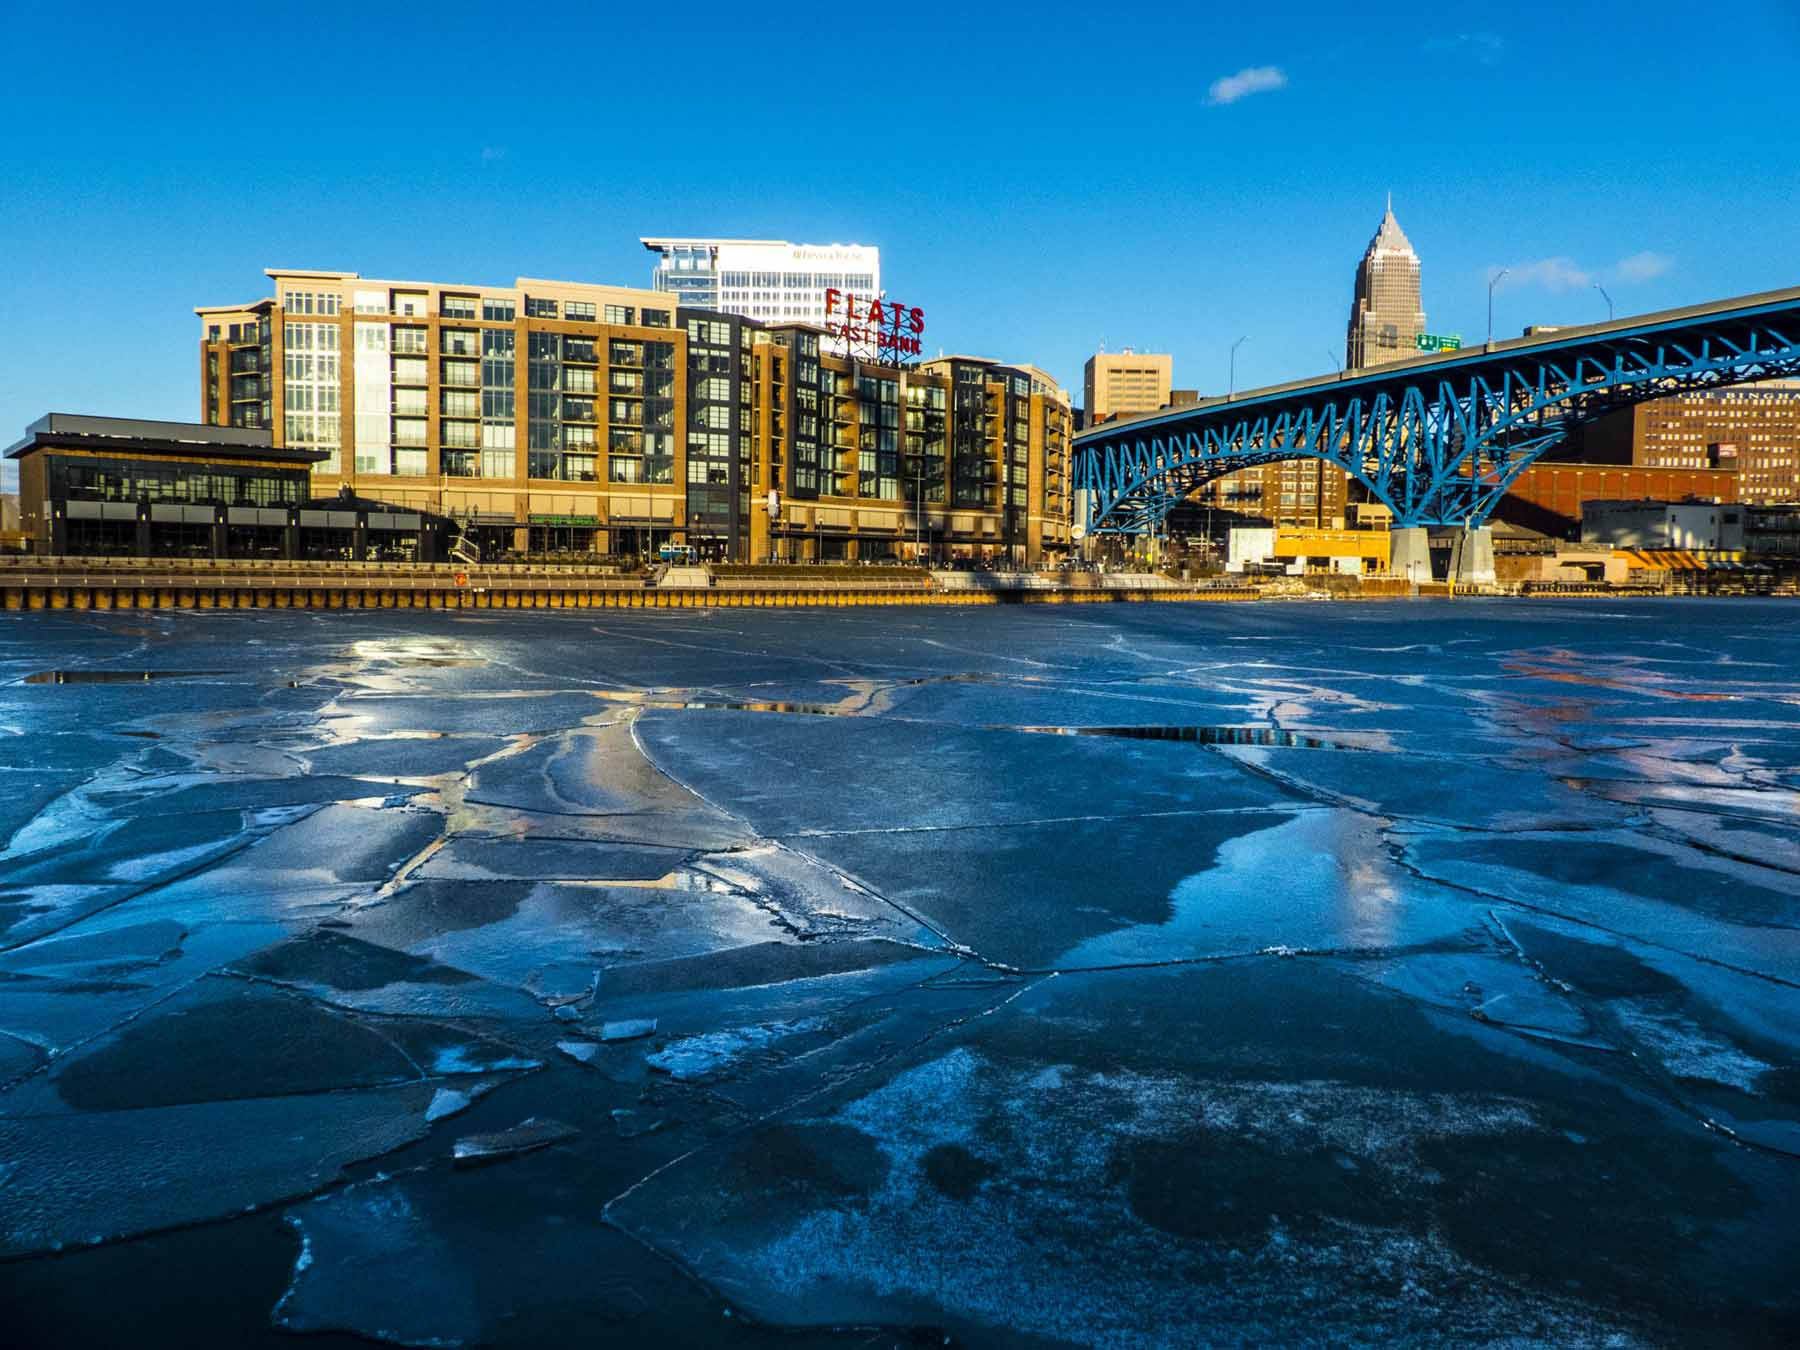 Flats East Bank_Day (1 of 1).jpg